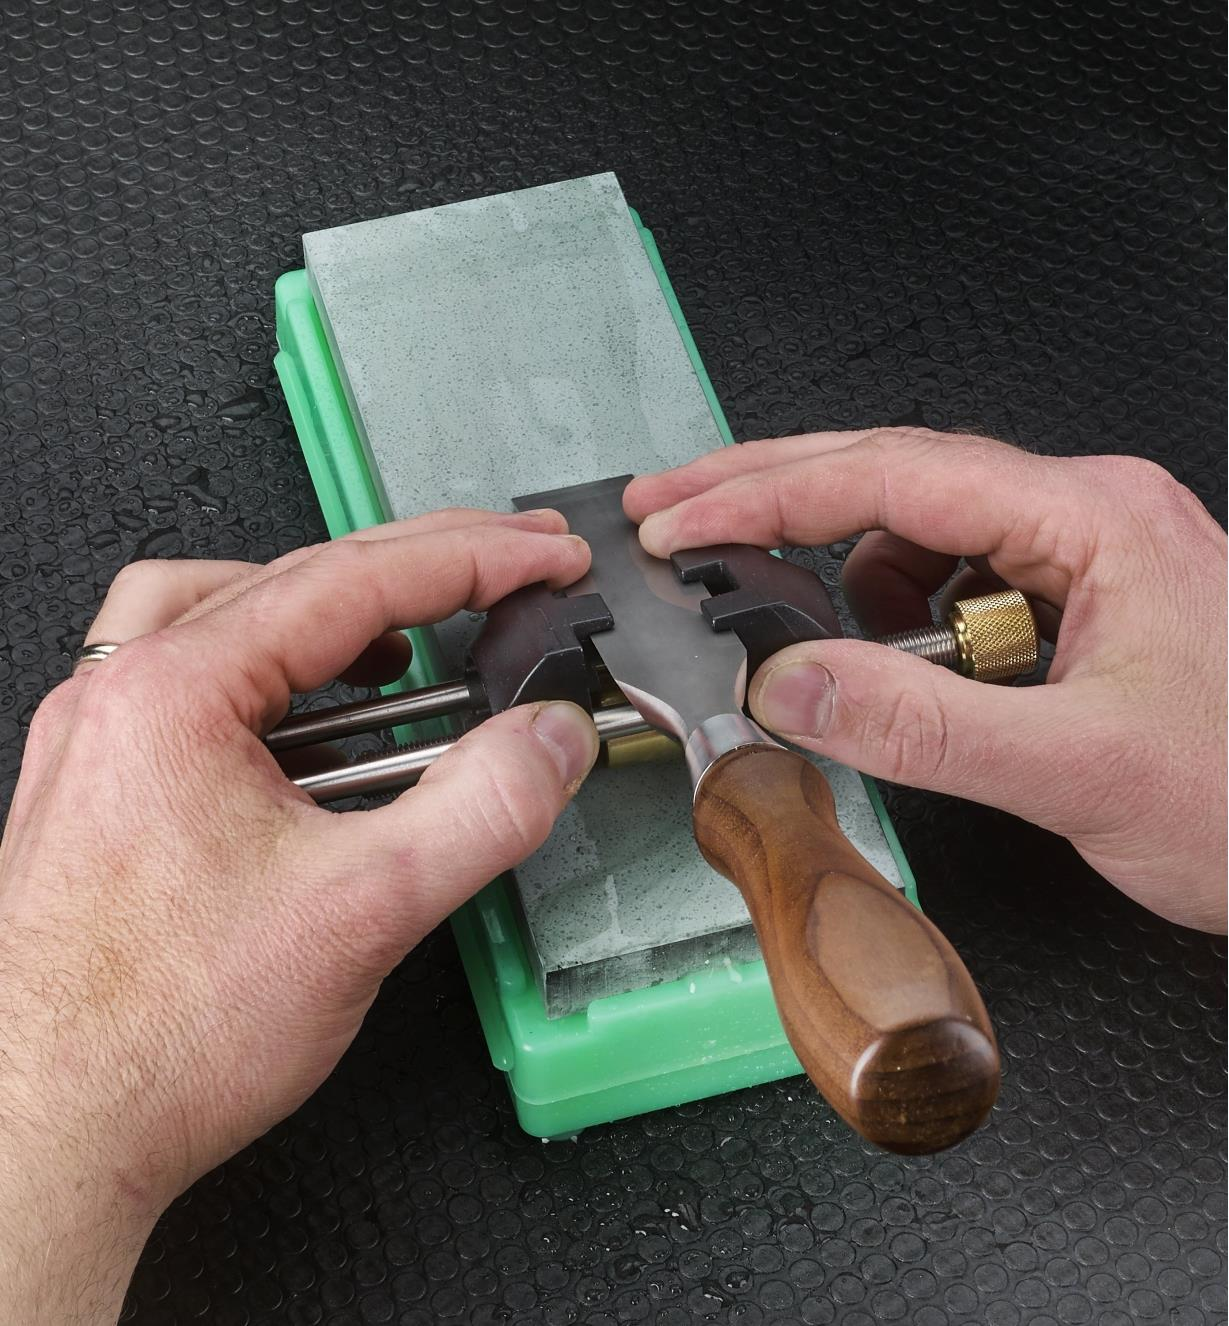 Sharpening a chisel on a Ha-No-Kuromaku ceramic stone